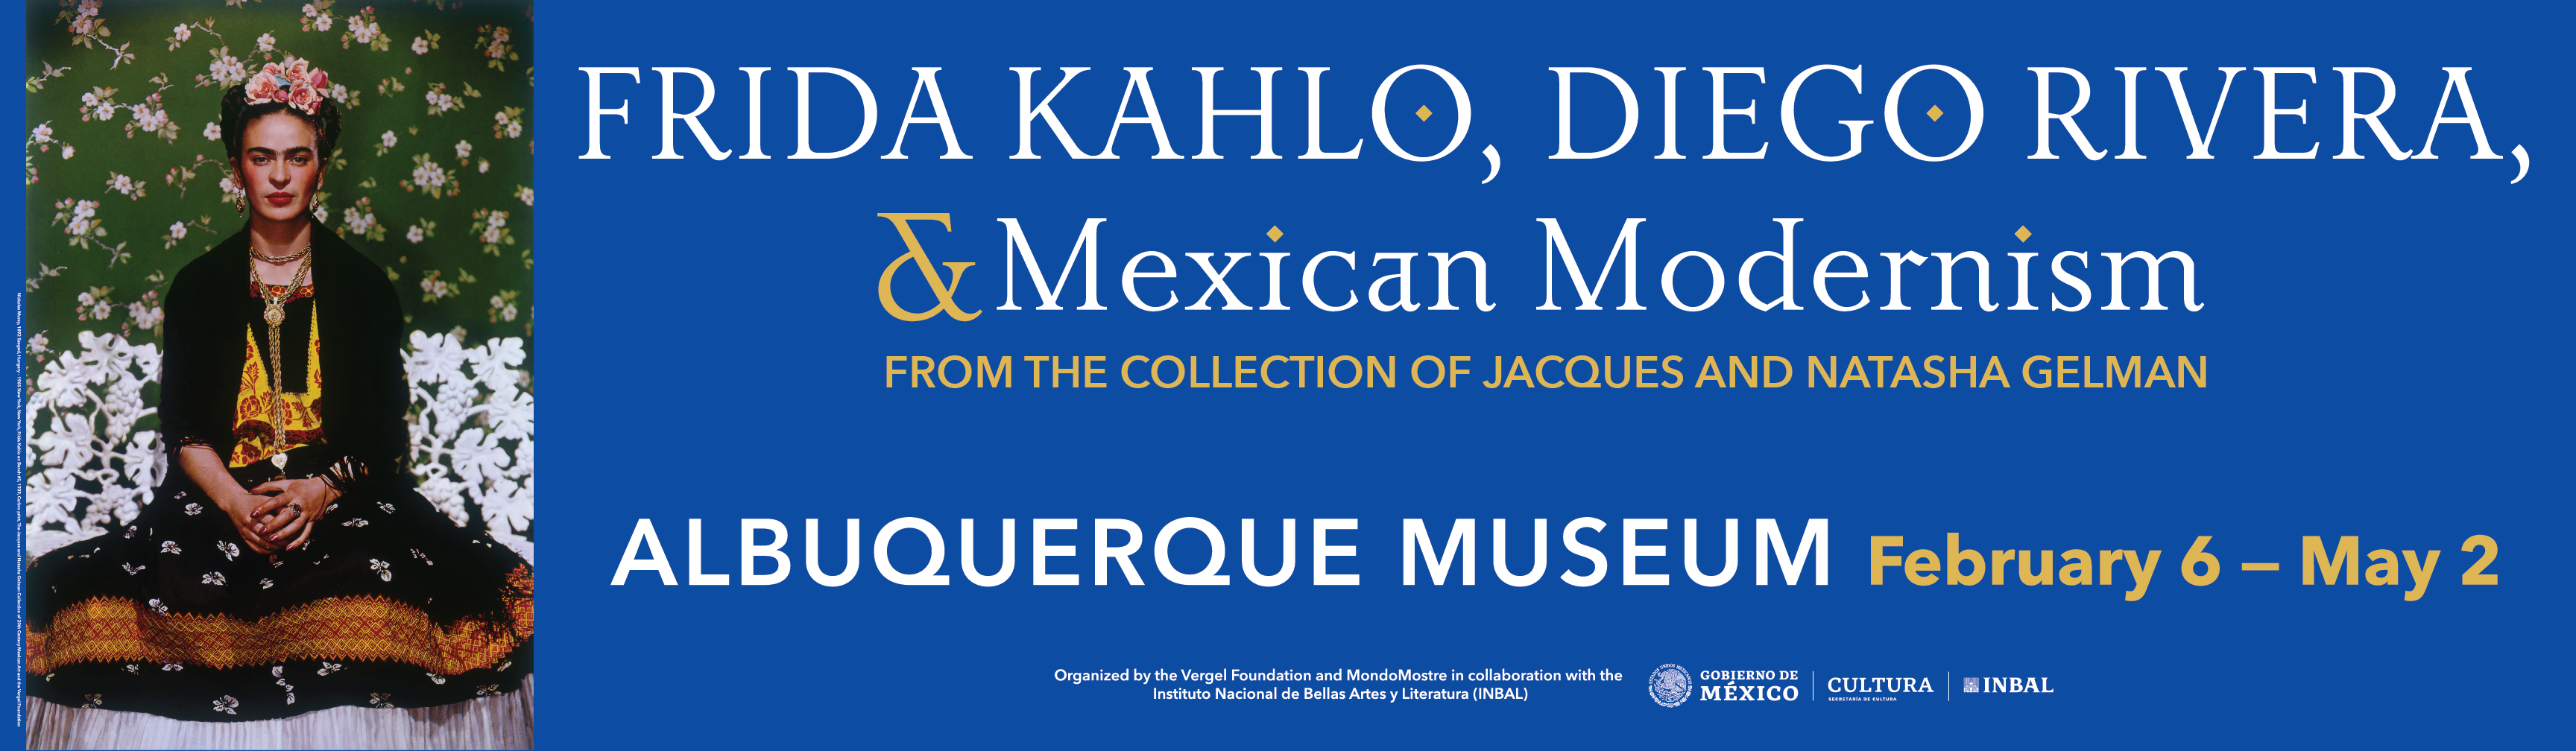 Frida Kahlo, Diego Rivera, and Mexican Modernism Banner